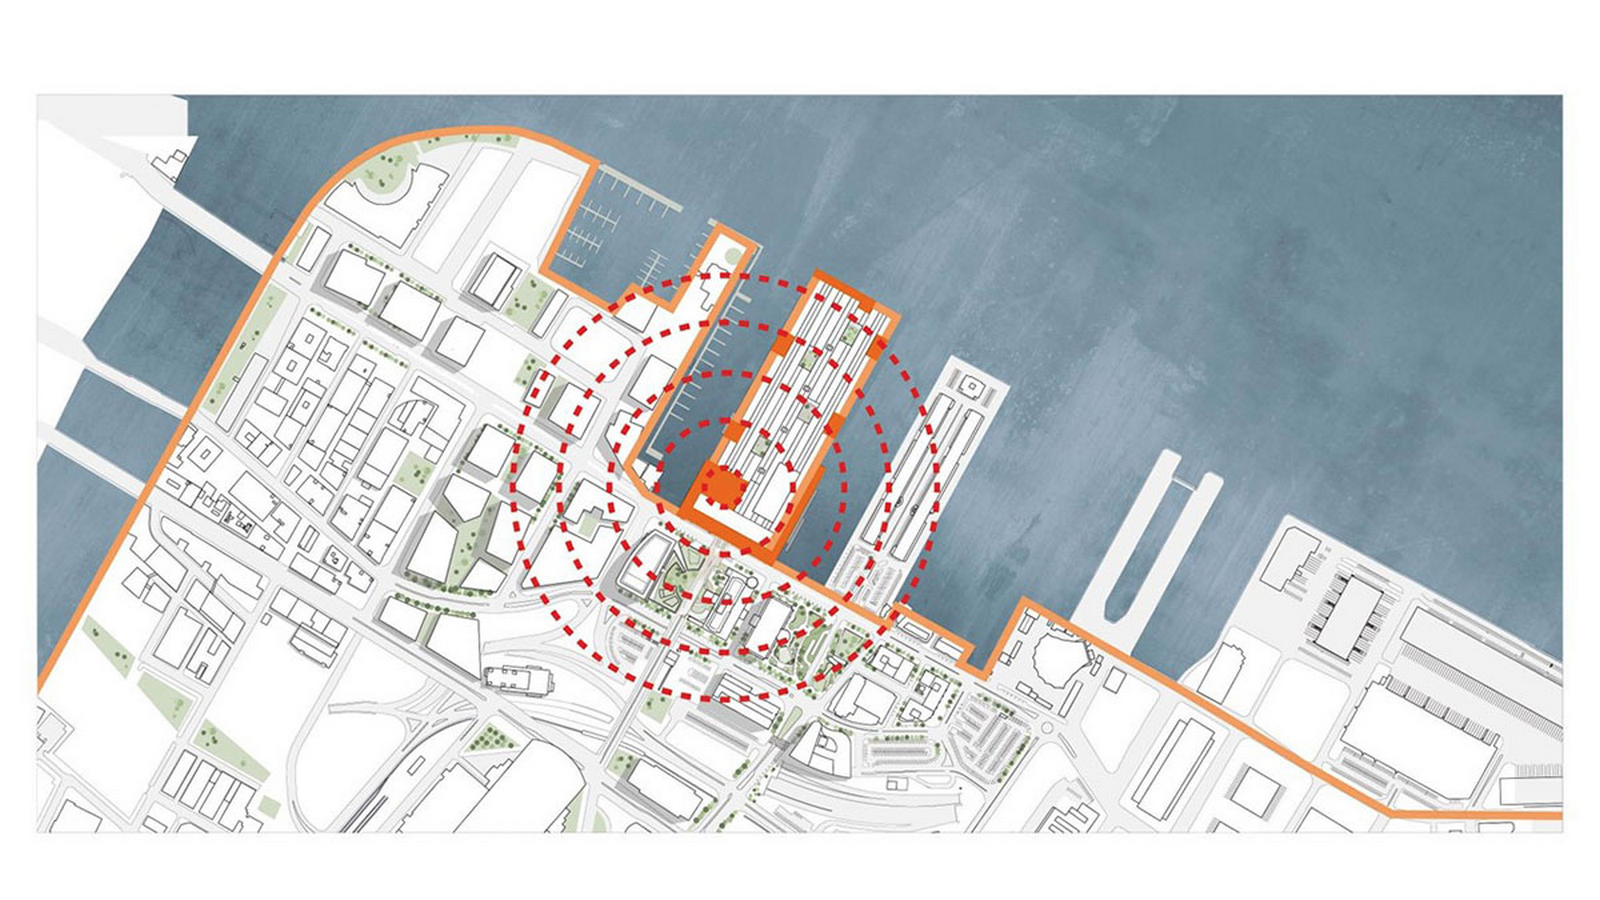 Construction begins on redesigning of Boston's Seaport World Trade Center by Schmidt Hammer Lassen Architects - Sheet3